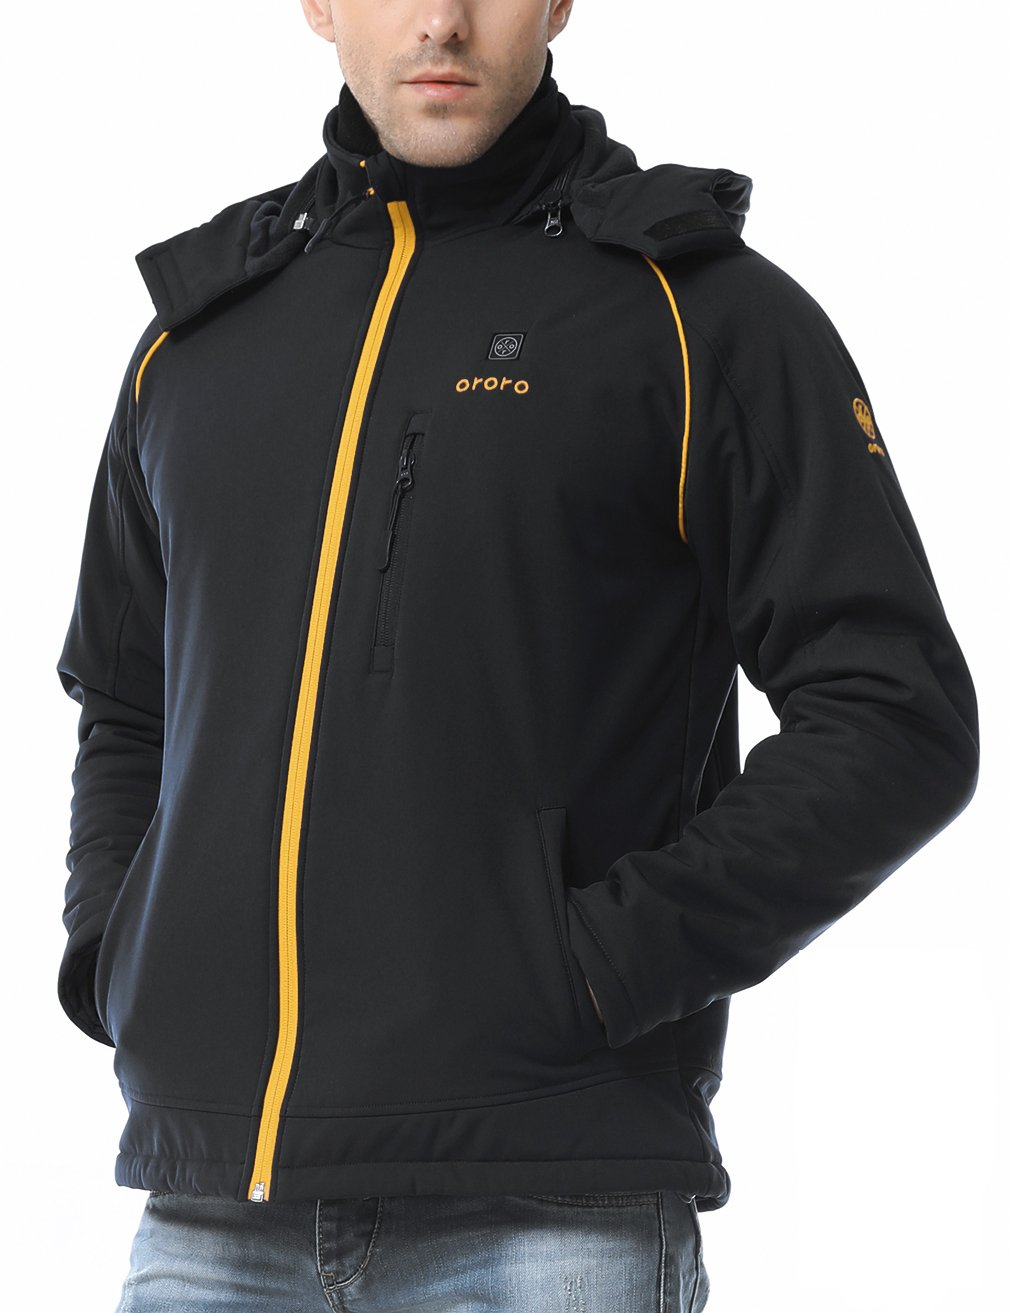 ororo Men's Soft Shell Heated Jacket Kit With Detachable Hood and Battery Pack (Black/Gold,XL) by ororo